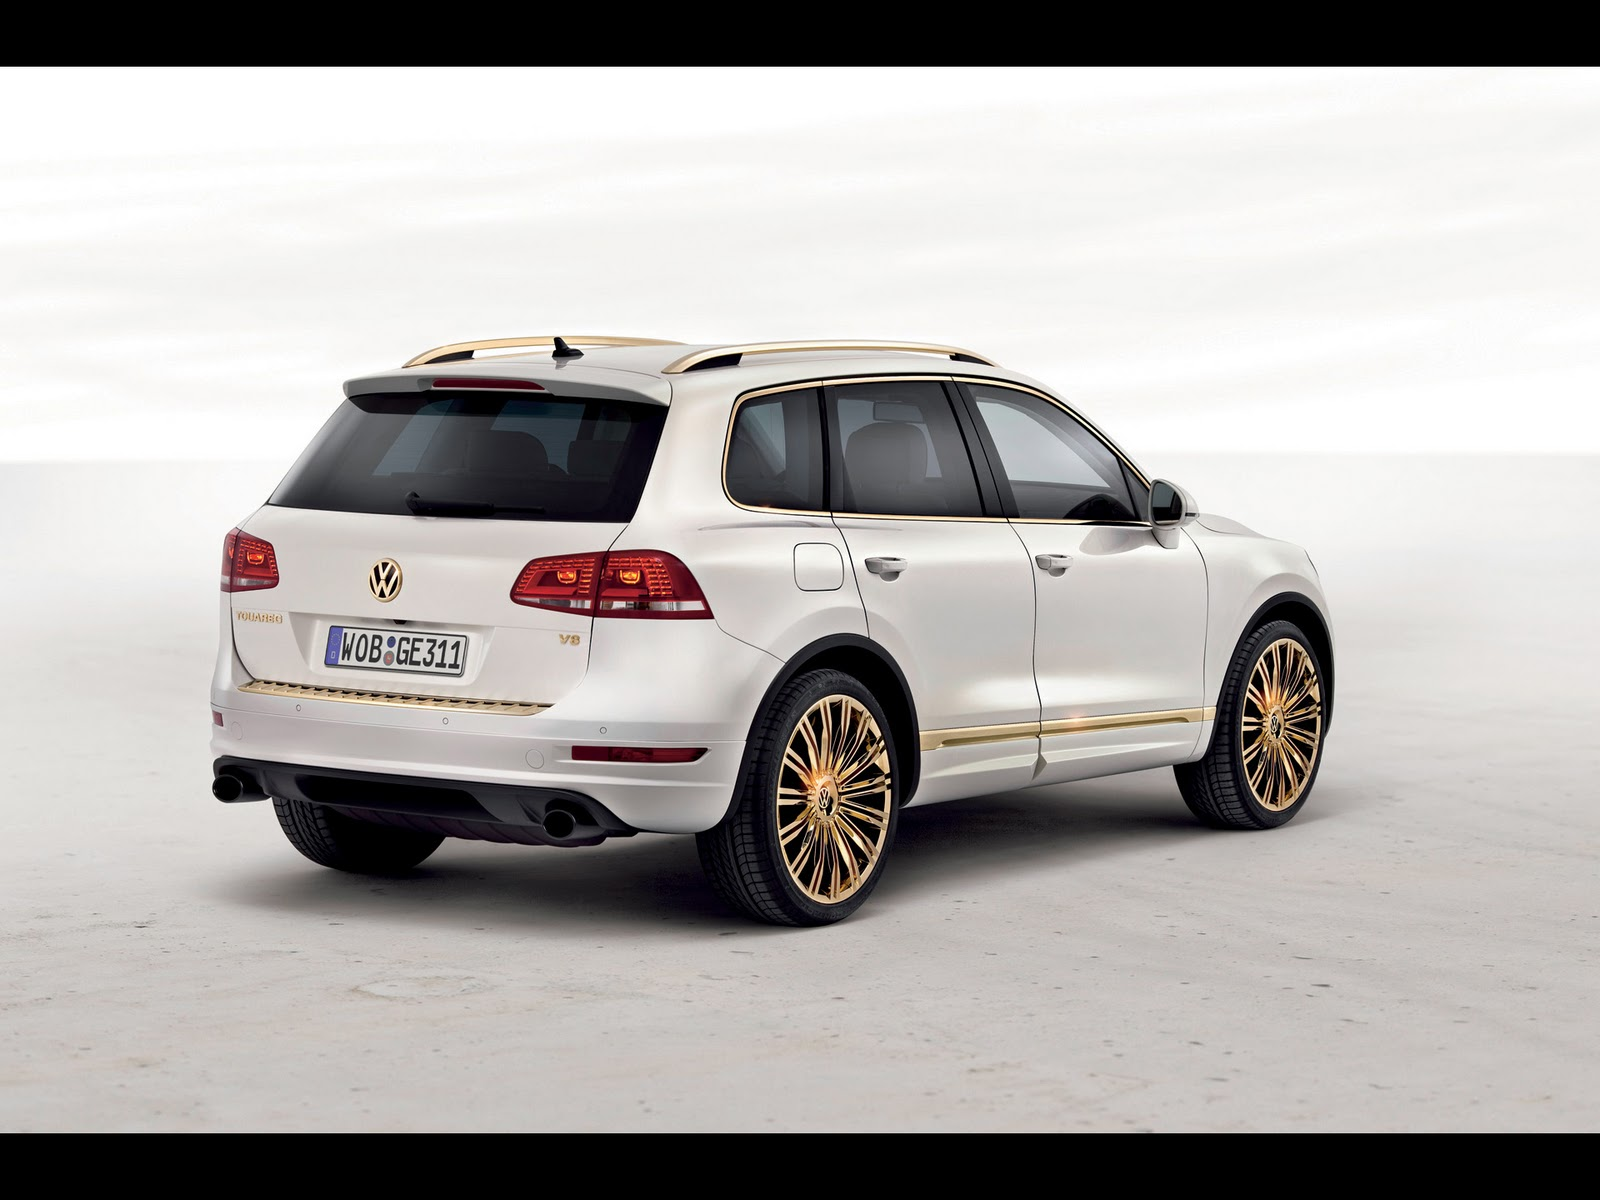 Pintures M Vich Cars Hd Wallpapers 2011 Volkswagen Touareg Gold Edition